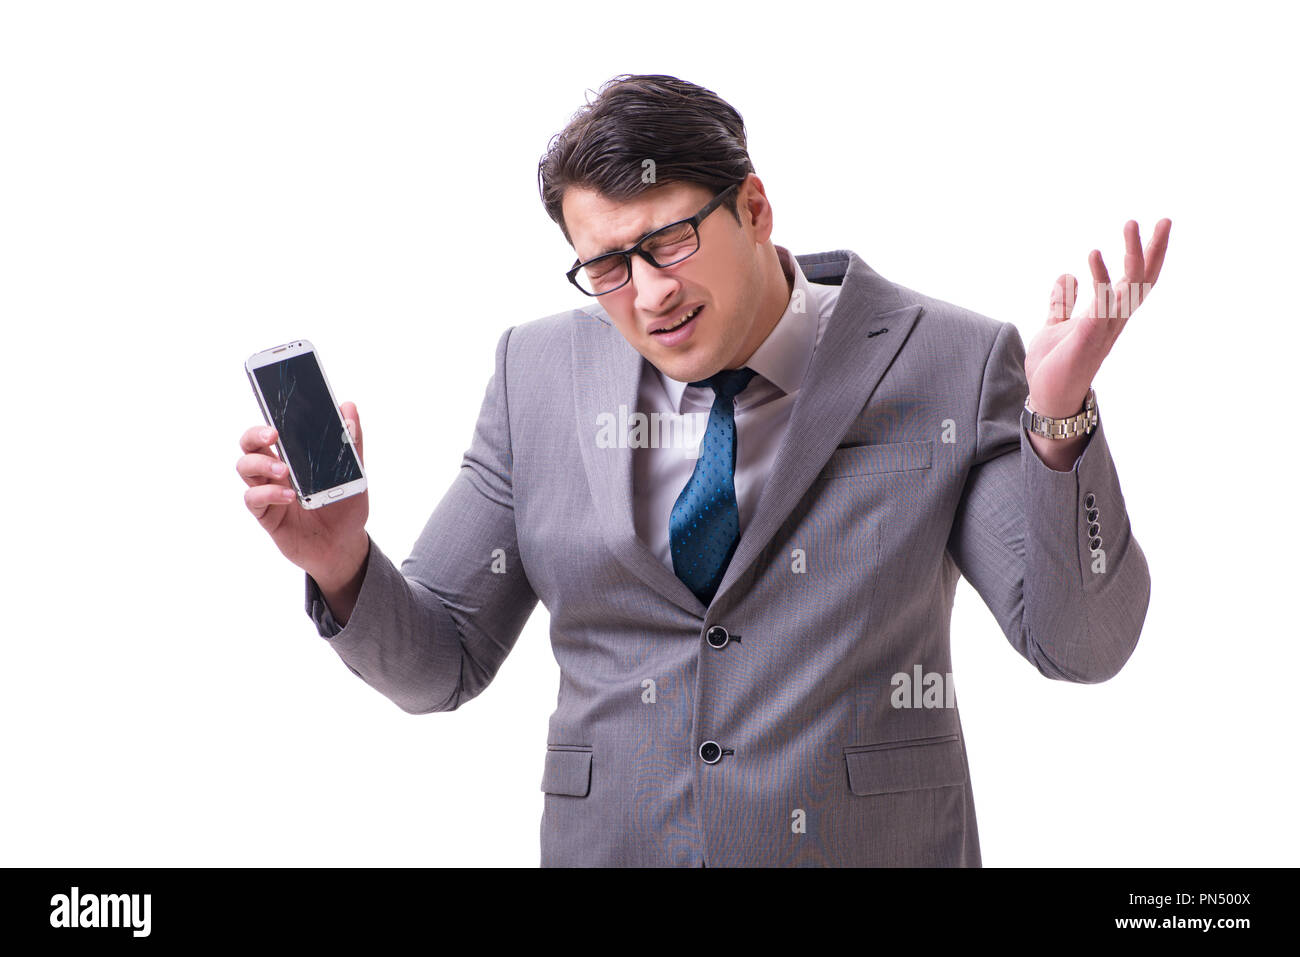 Businessman with mobile phone isolated on white - Stock Image